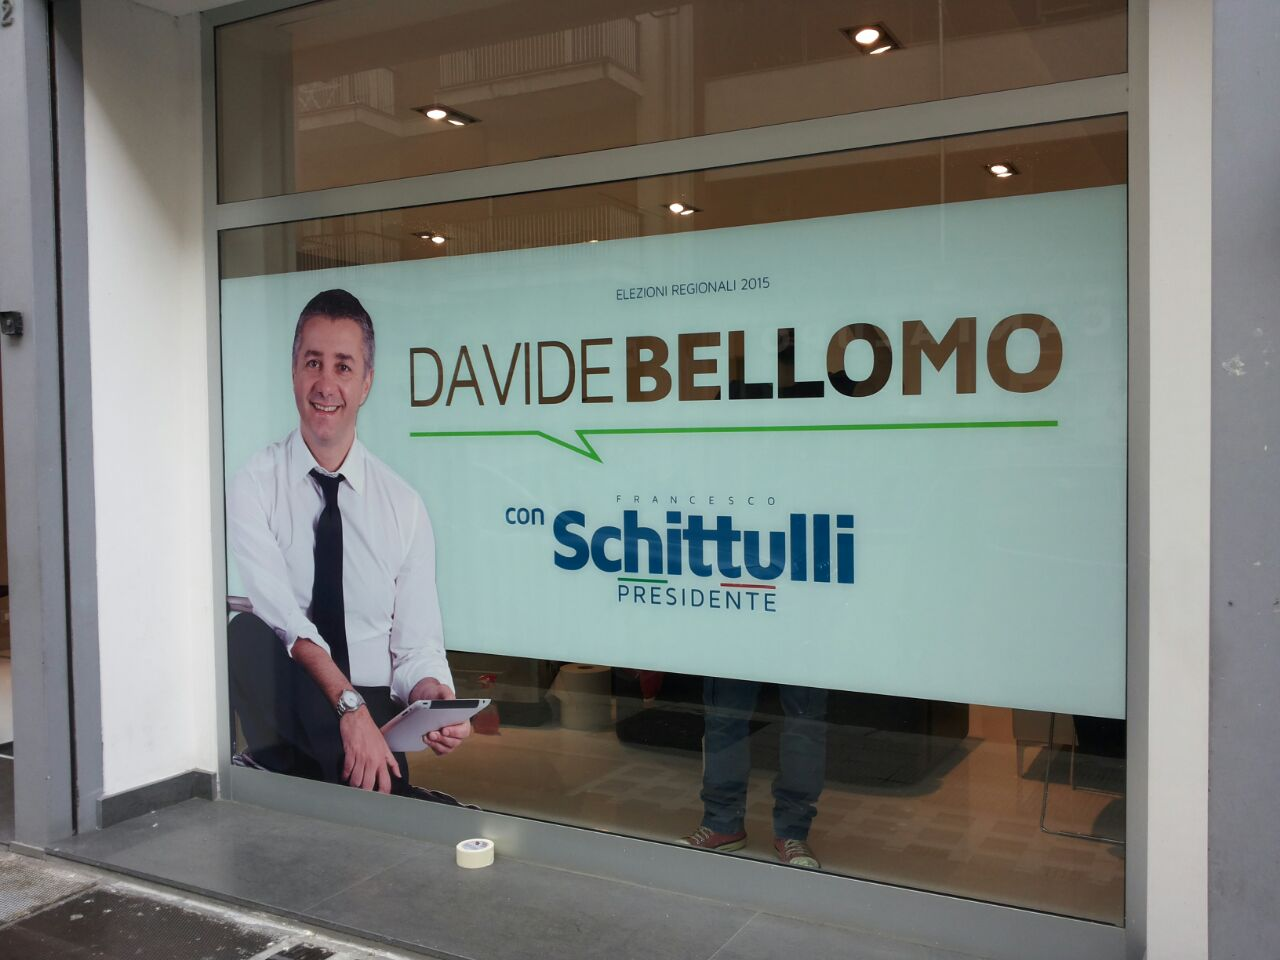 DAVIDE BELLOMO